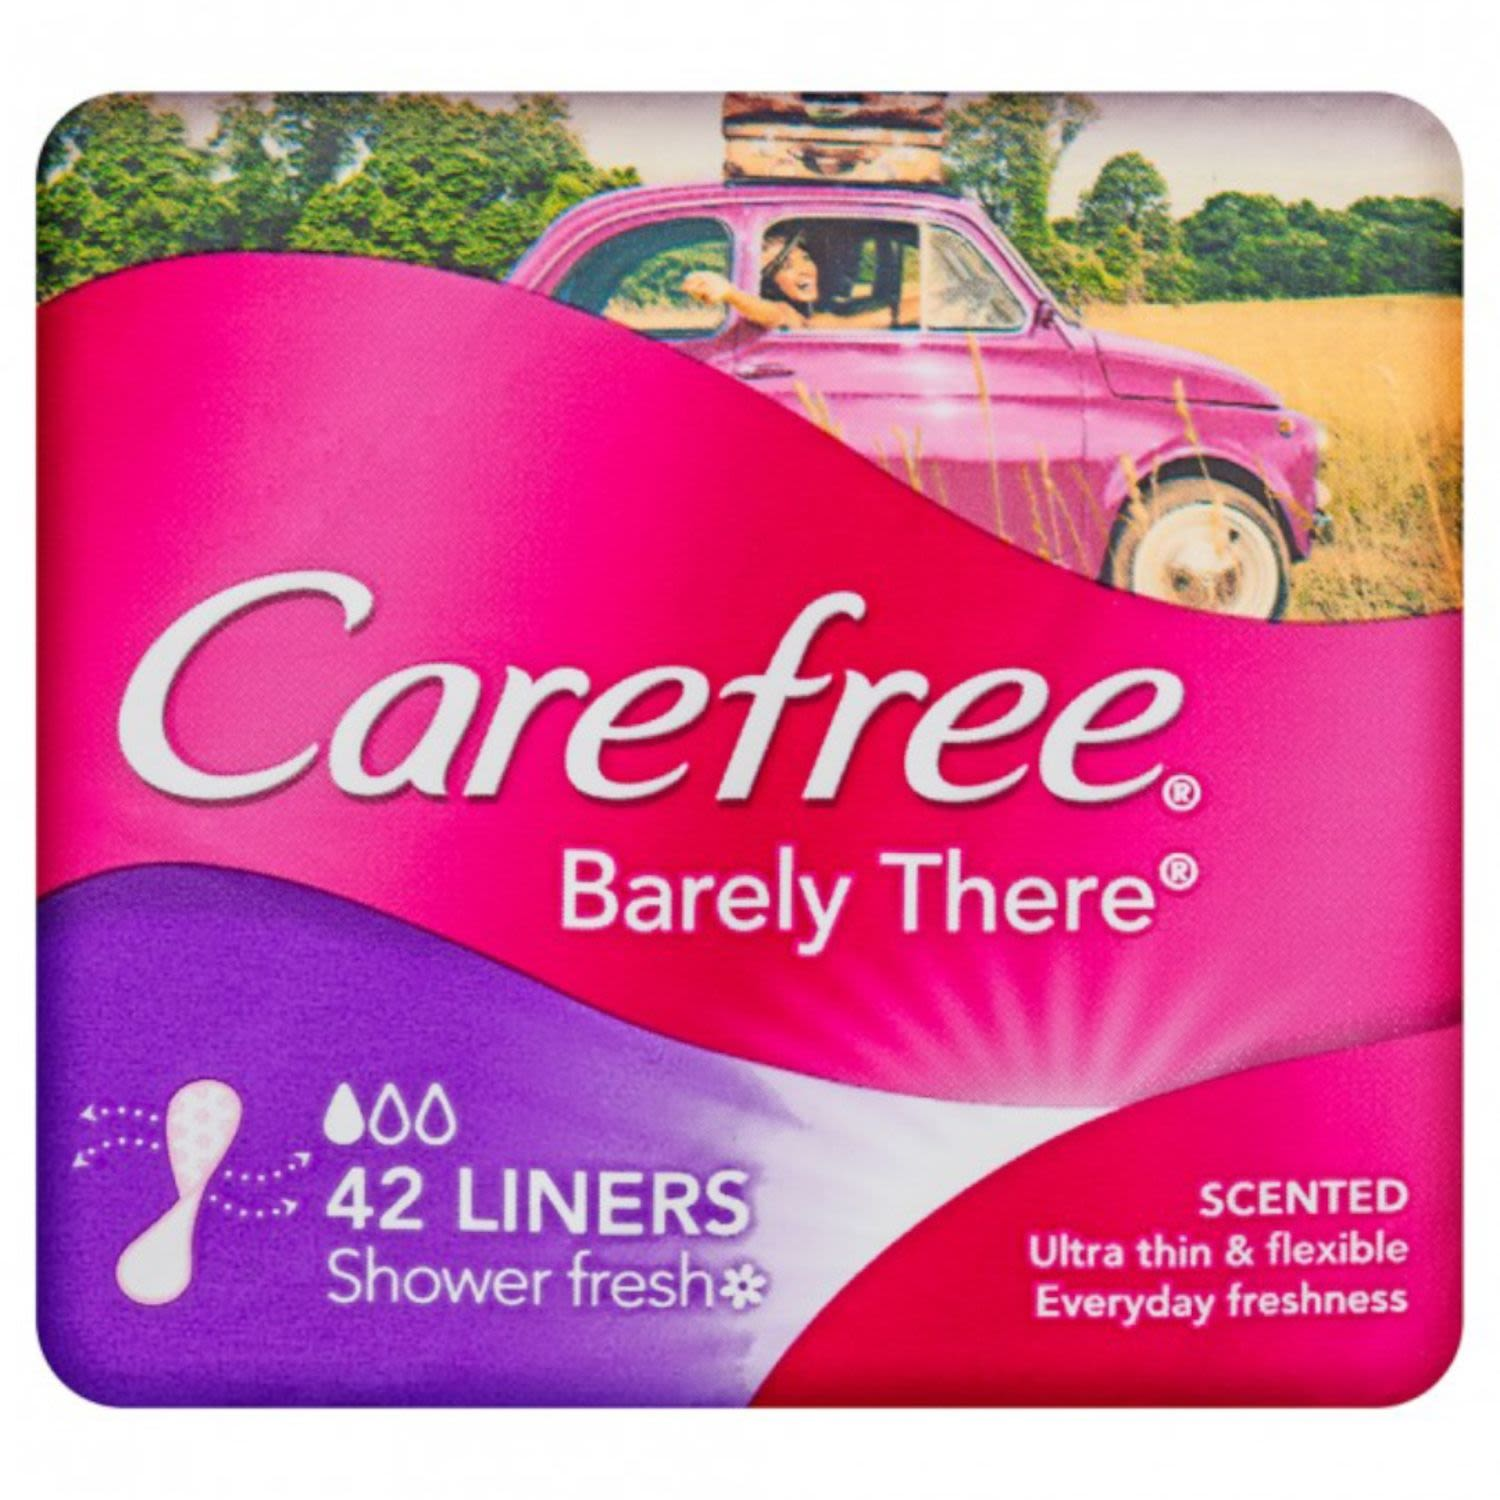 Carefree Panty Liner Barely There Scented, 42 Each